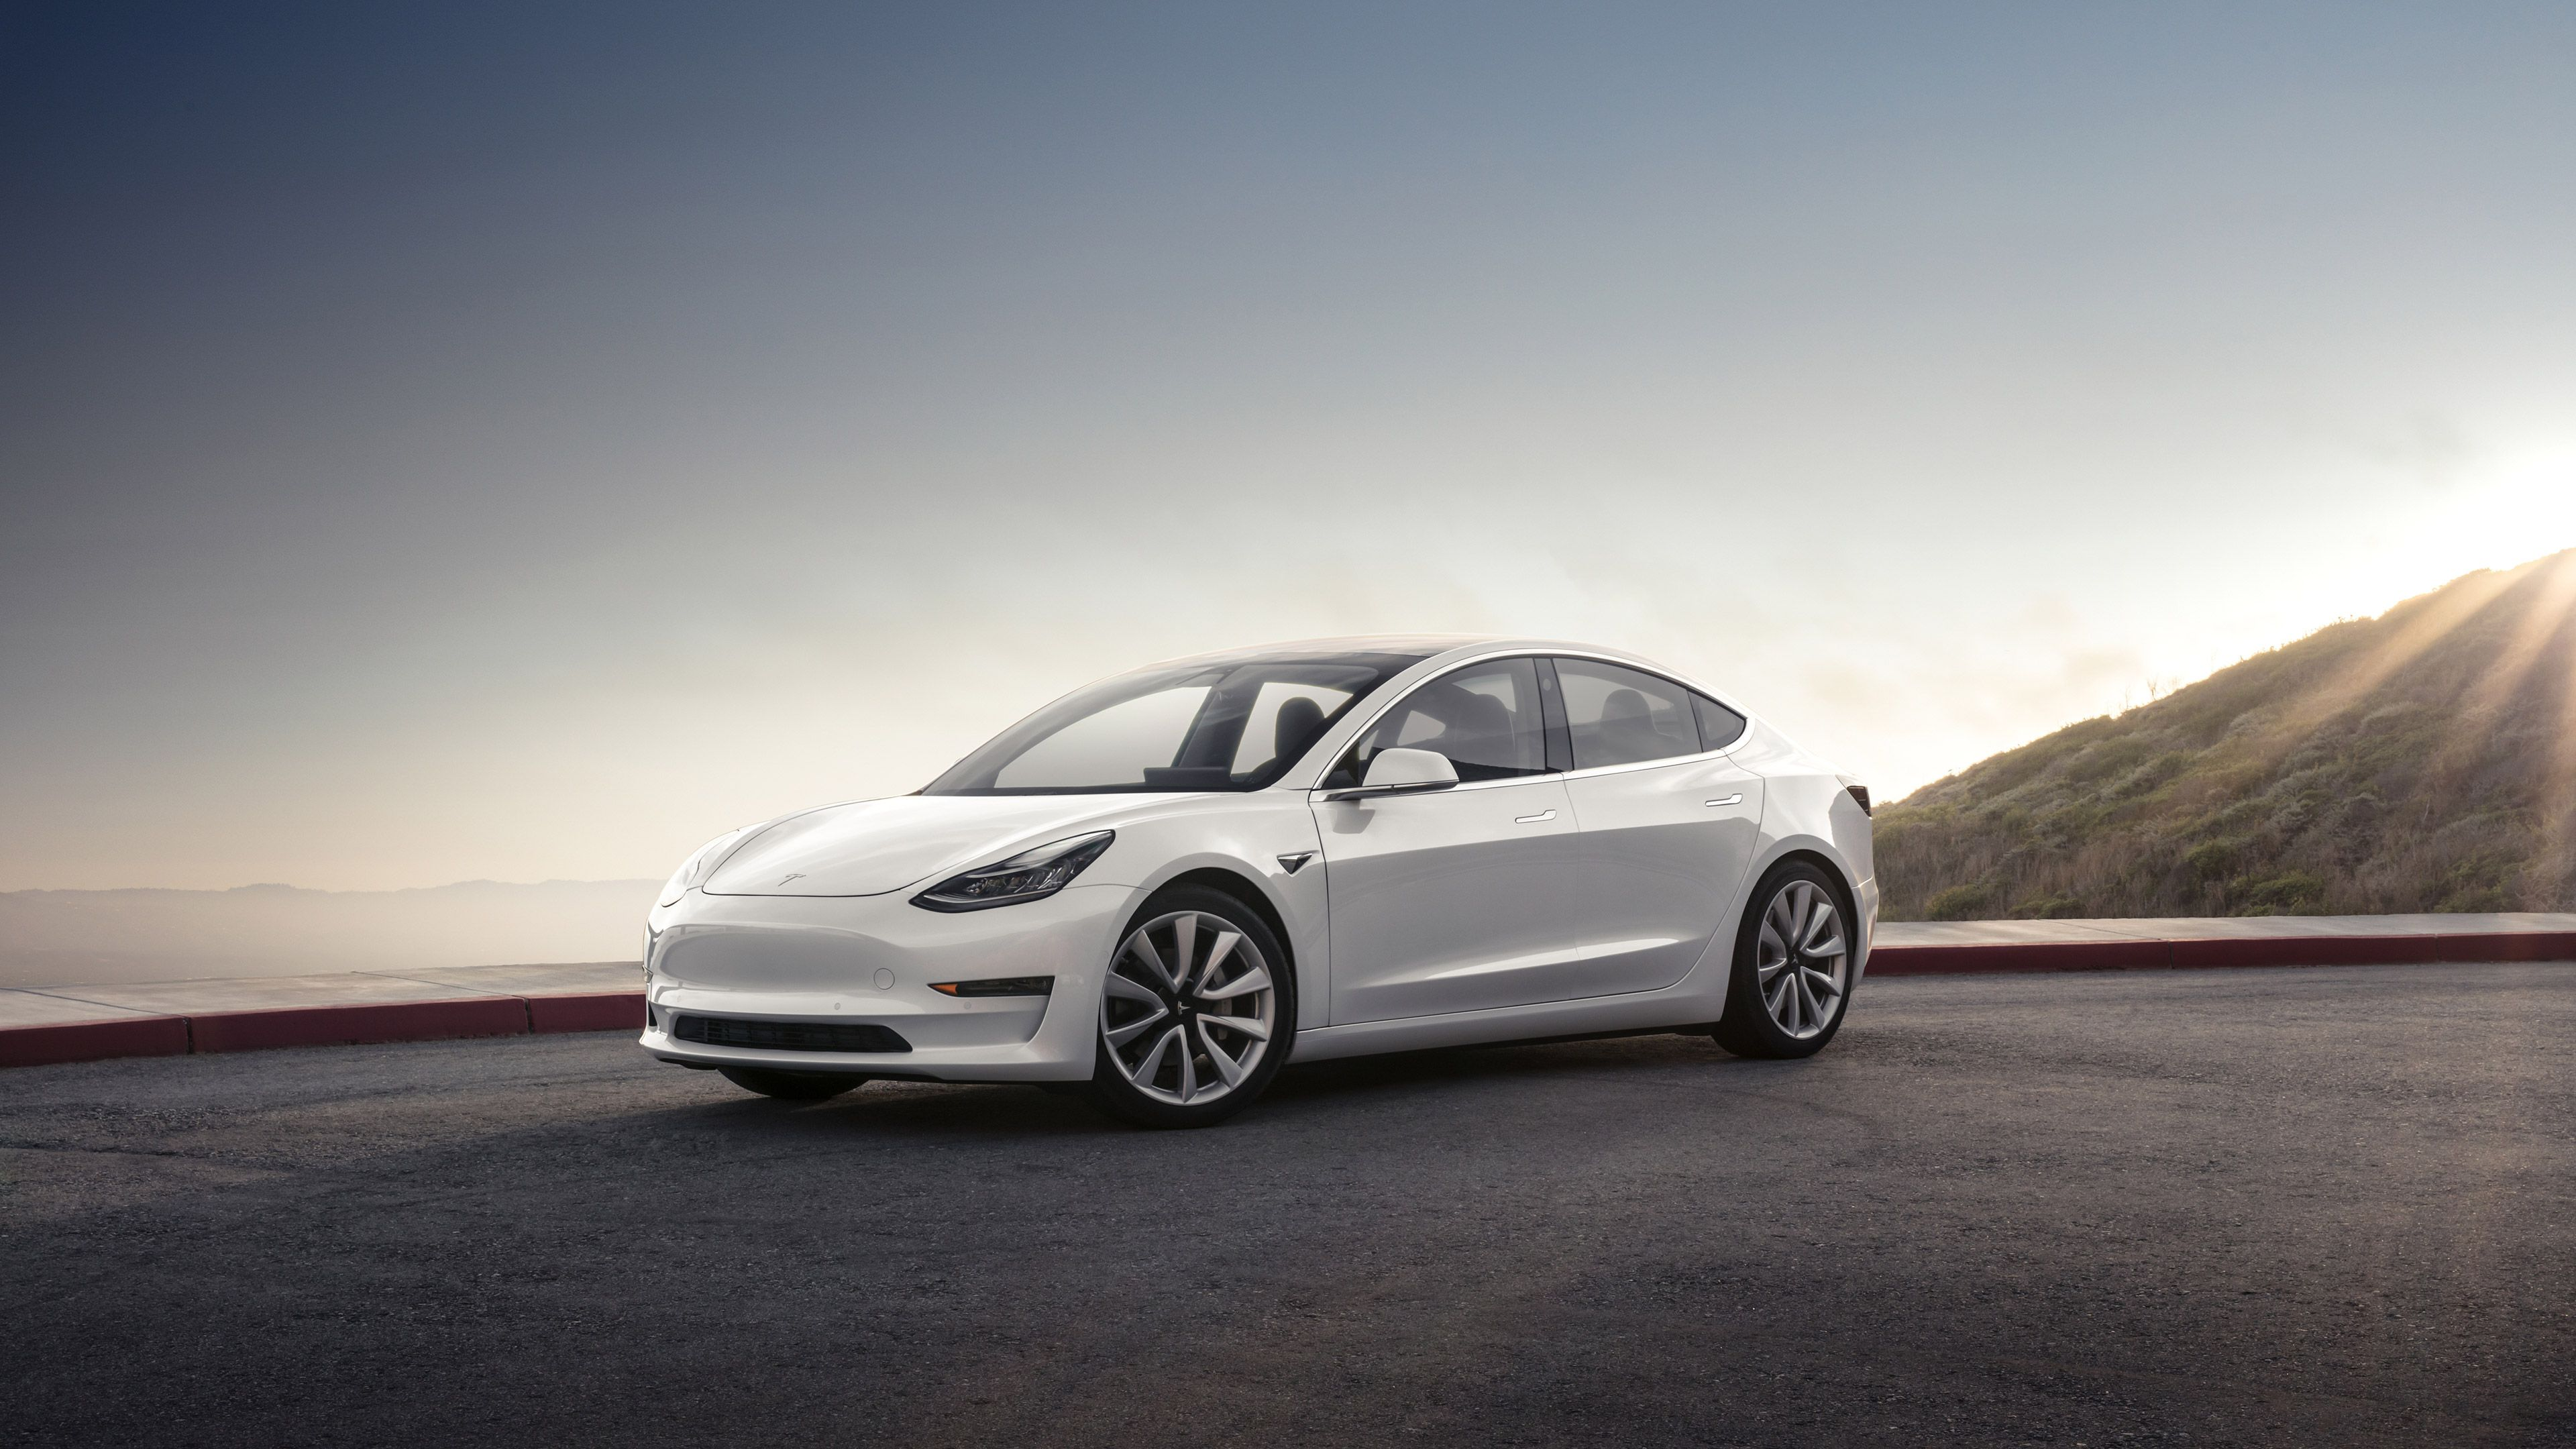 White Tesla Model 3 Wallpapers   Top White Tesla Model 3 3840x2160